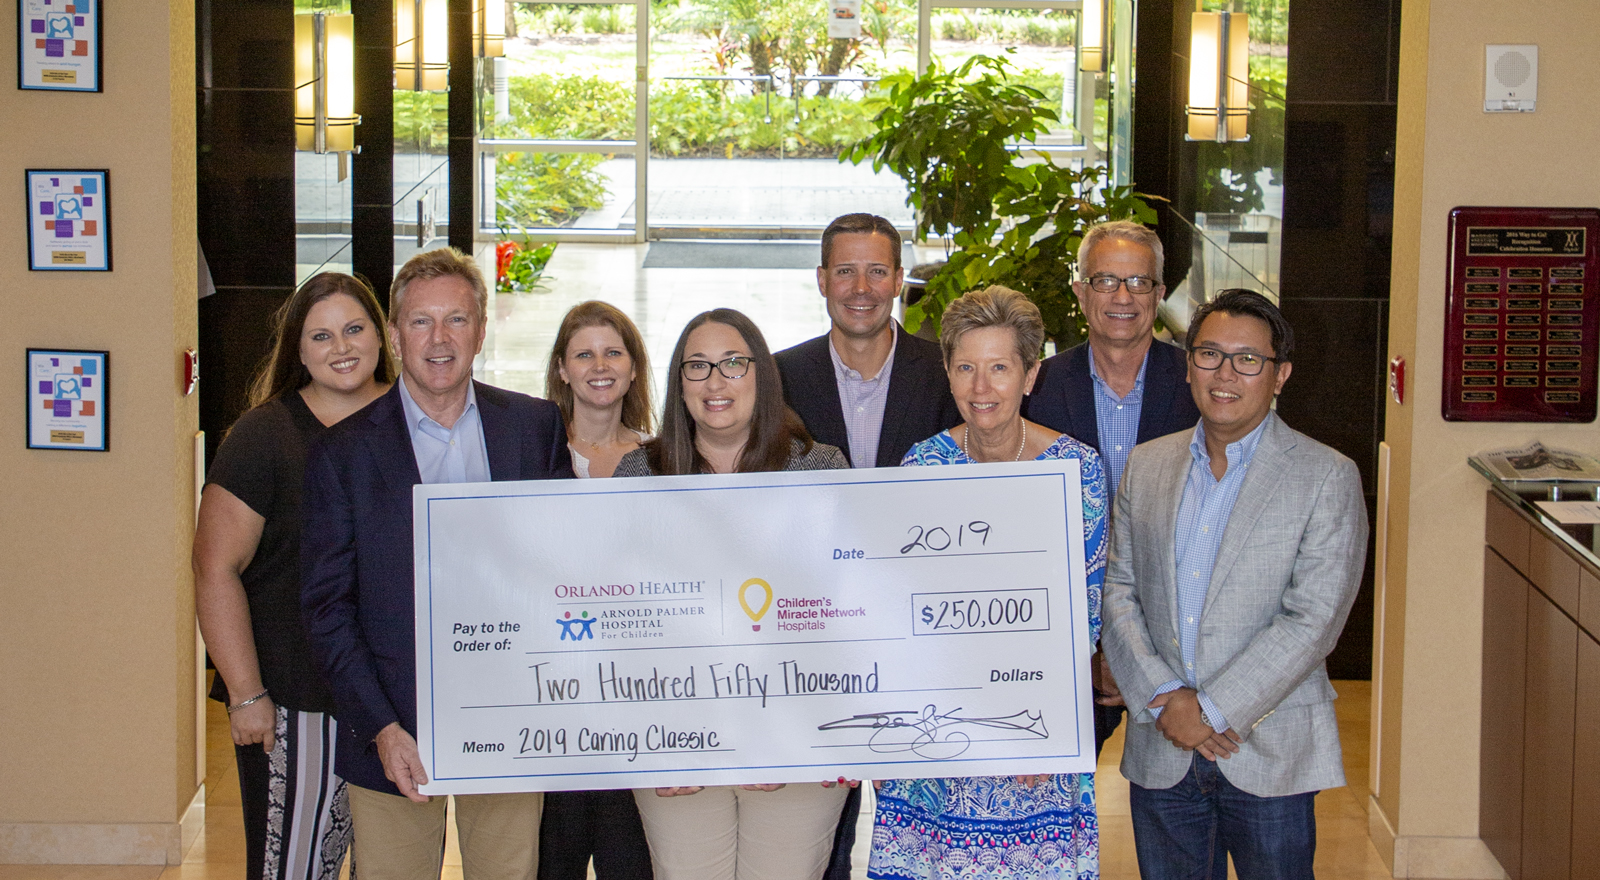 $250,000 donation check to children's miracle network hospital